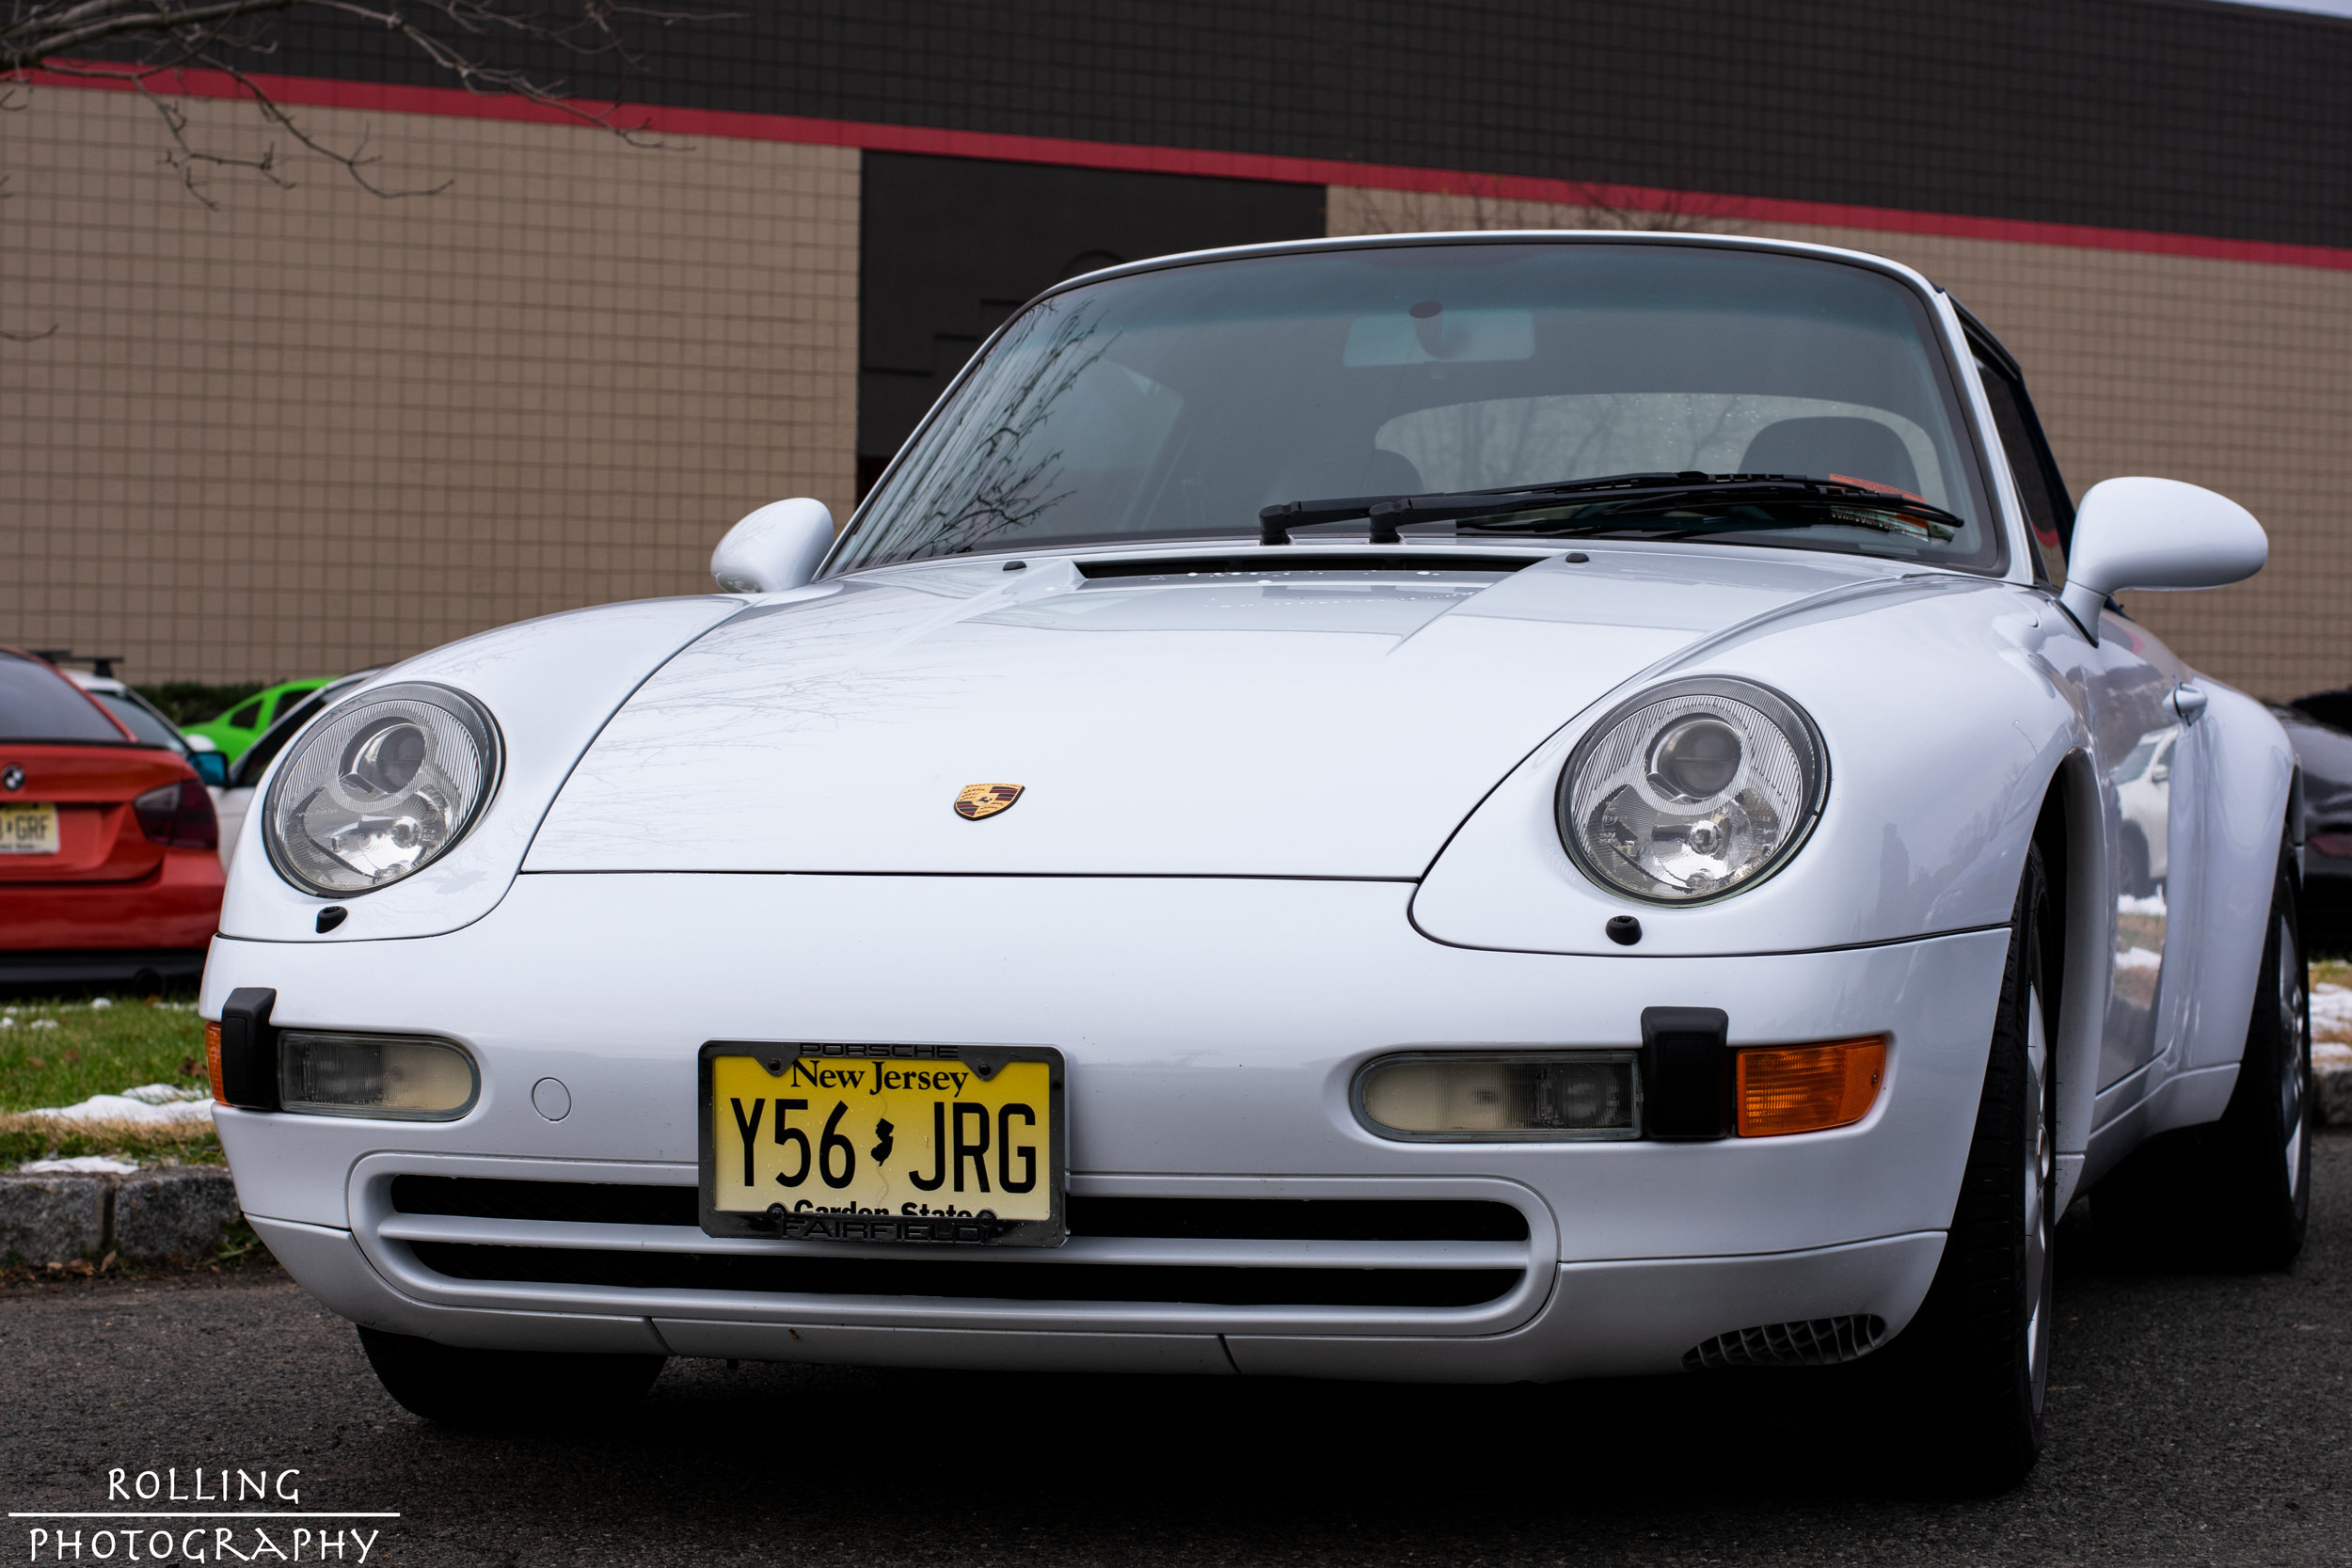 Porsche 911 (White)  ISO 200, 50mm, f / 8.0 Shutter Speed 1/200